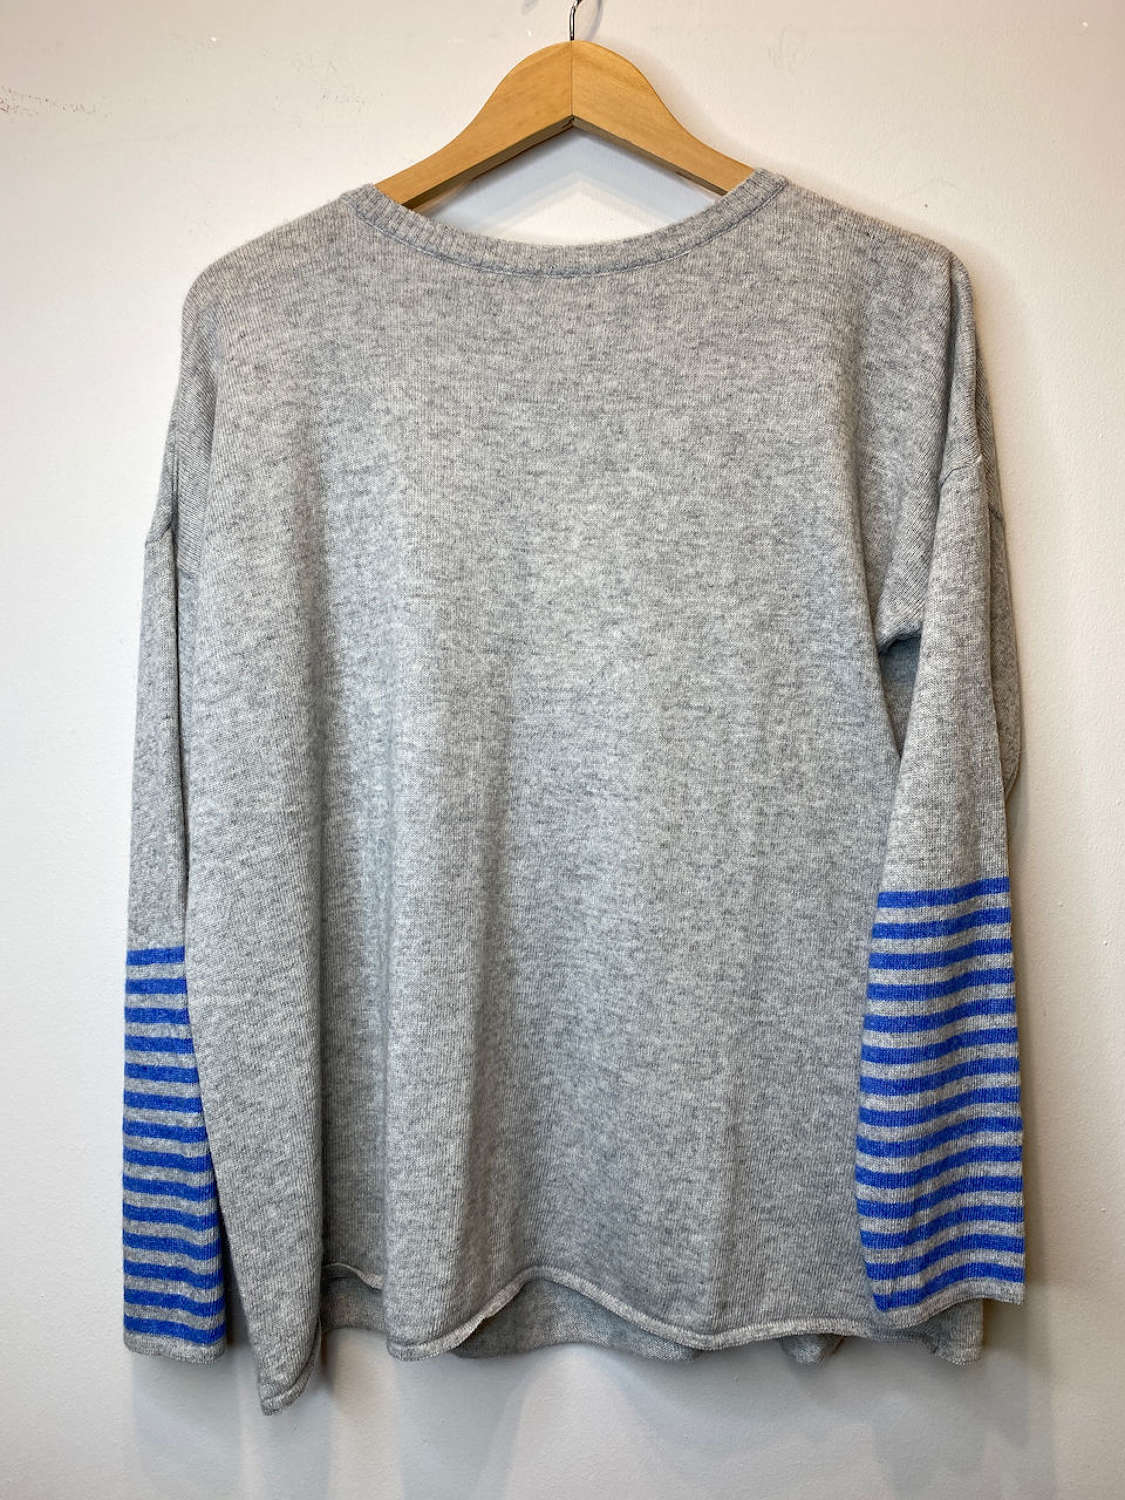 Cashmere Jumper - Stripes on Sleeve (available in 3 colour variations)